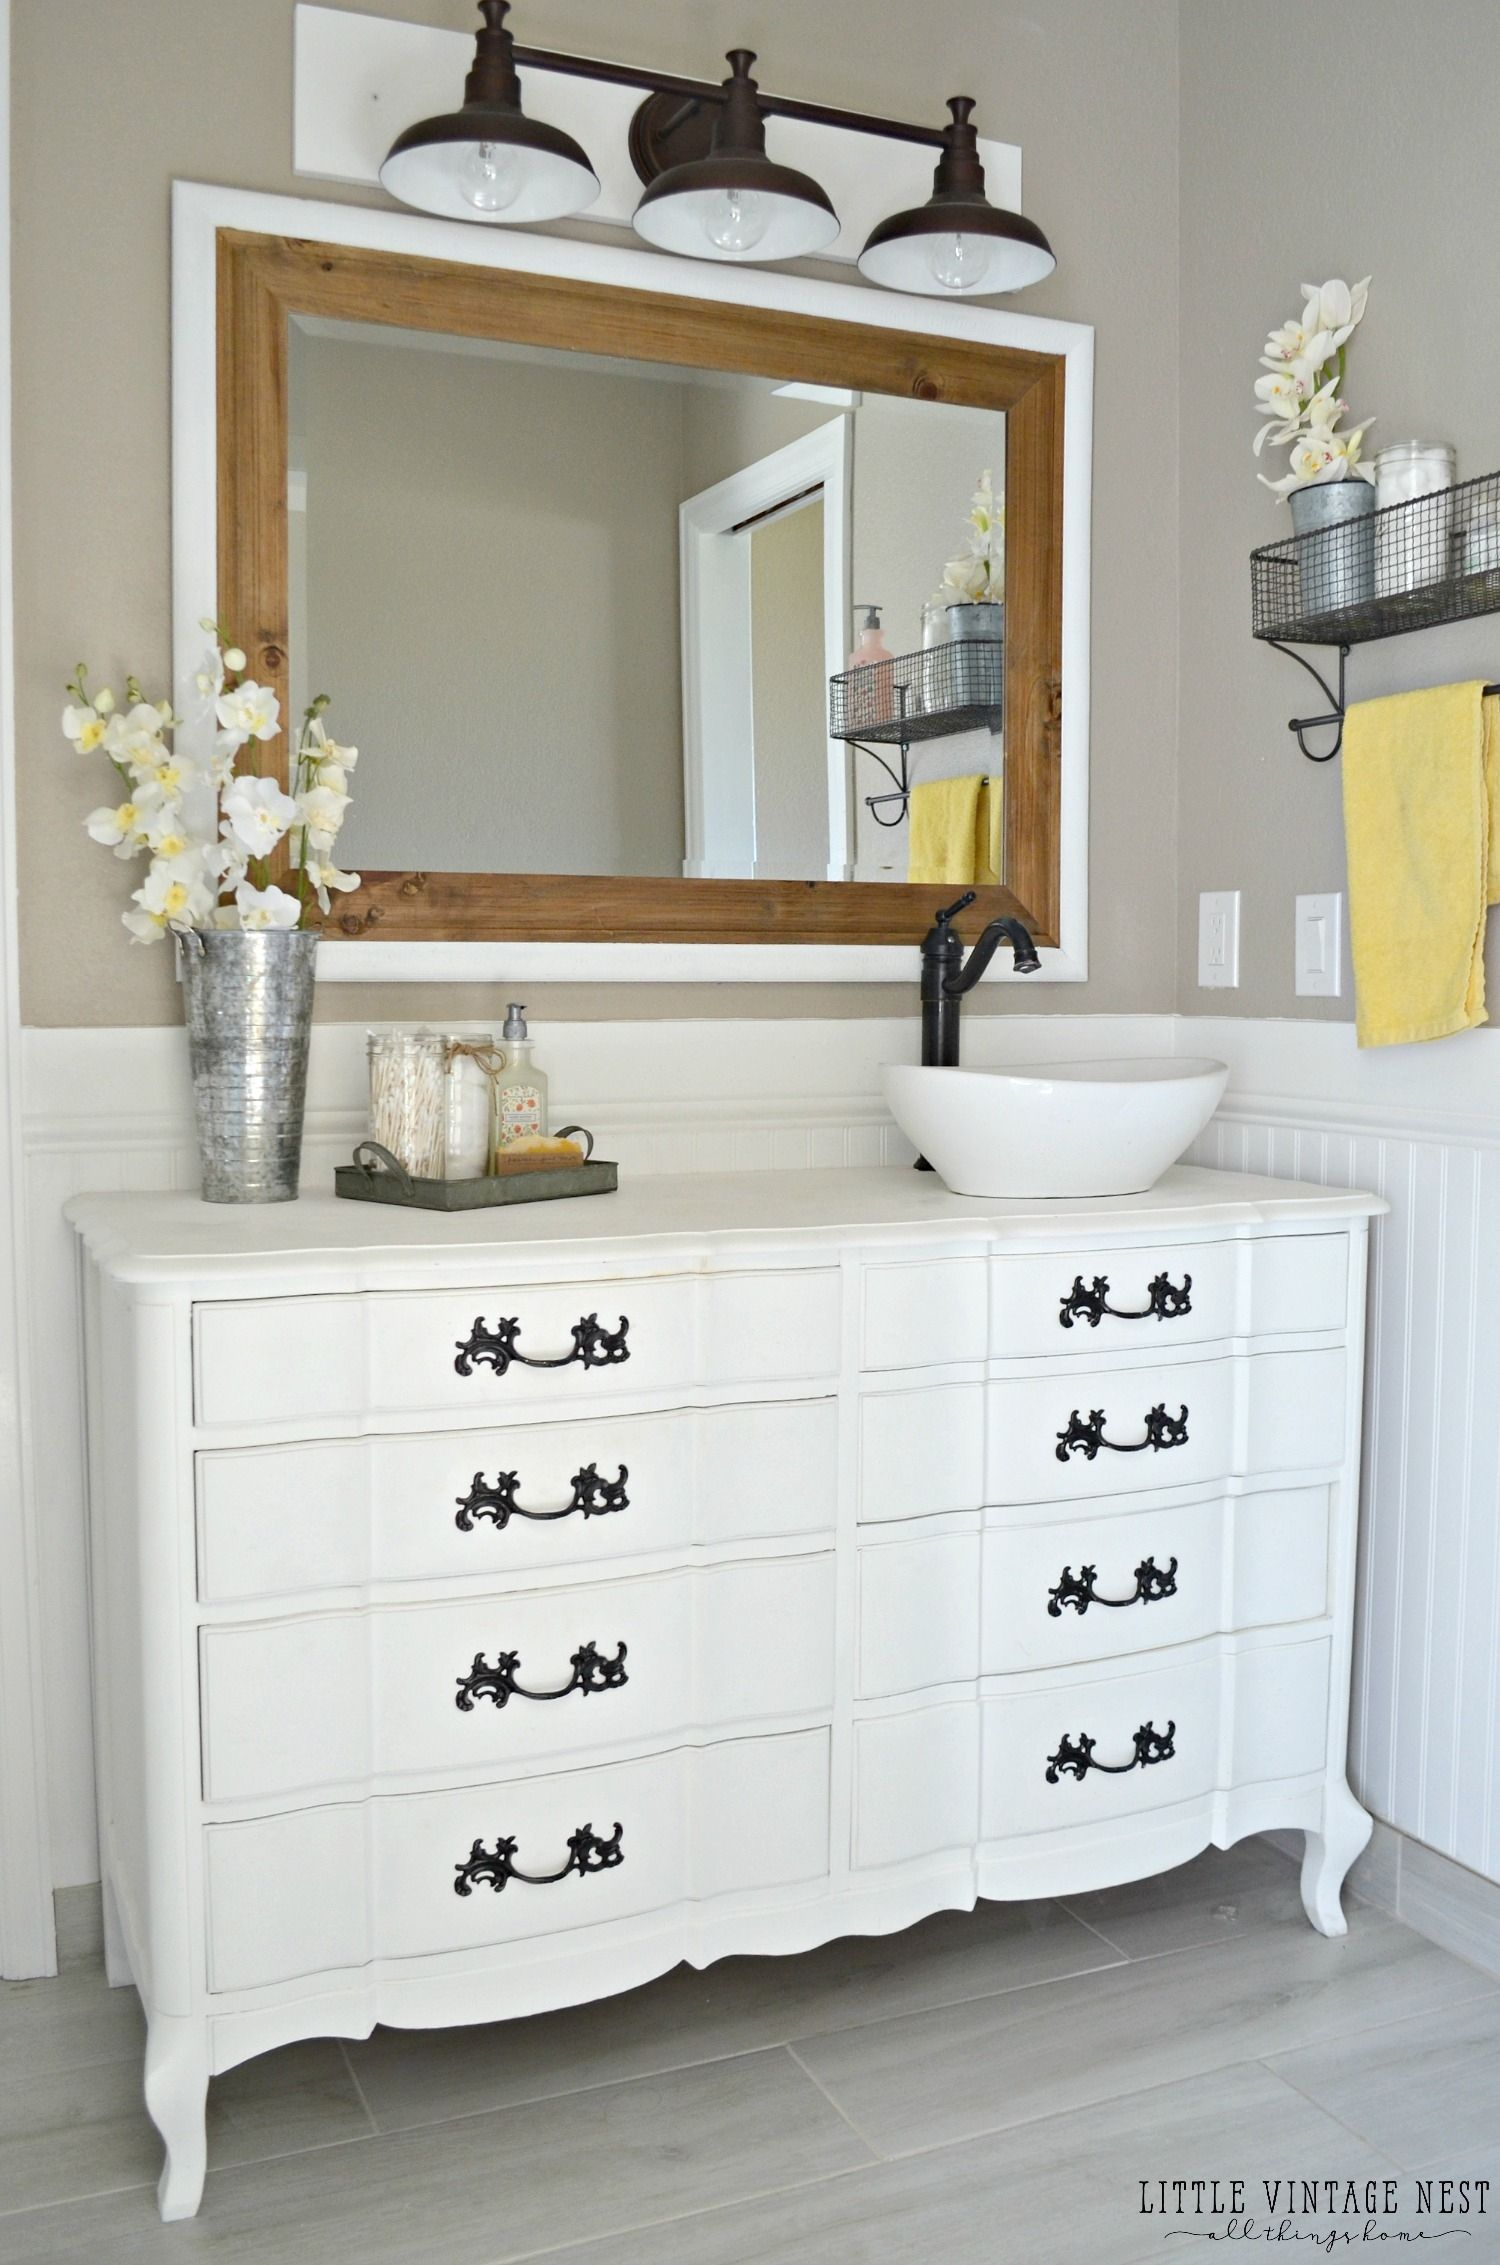 dresser turned in ideas amazing tour stunning modern on for get pinterest vanities awesome without bathroom into double intended vanity